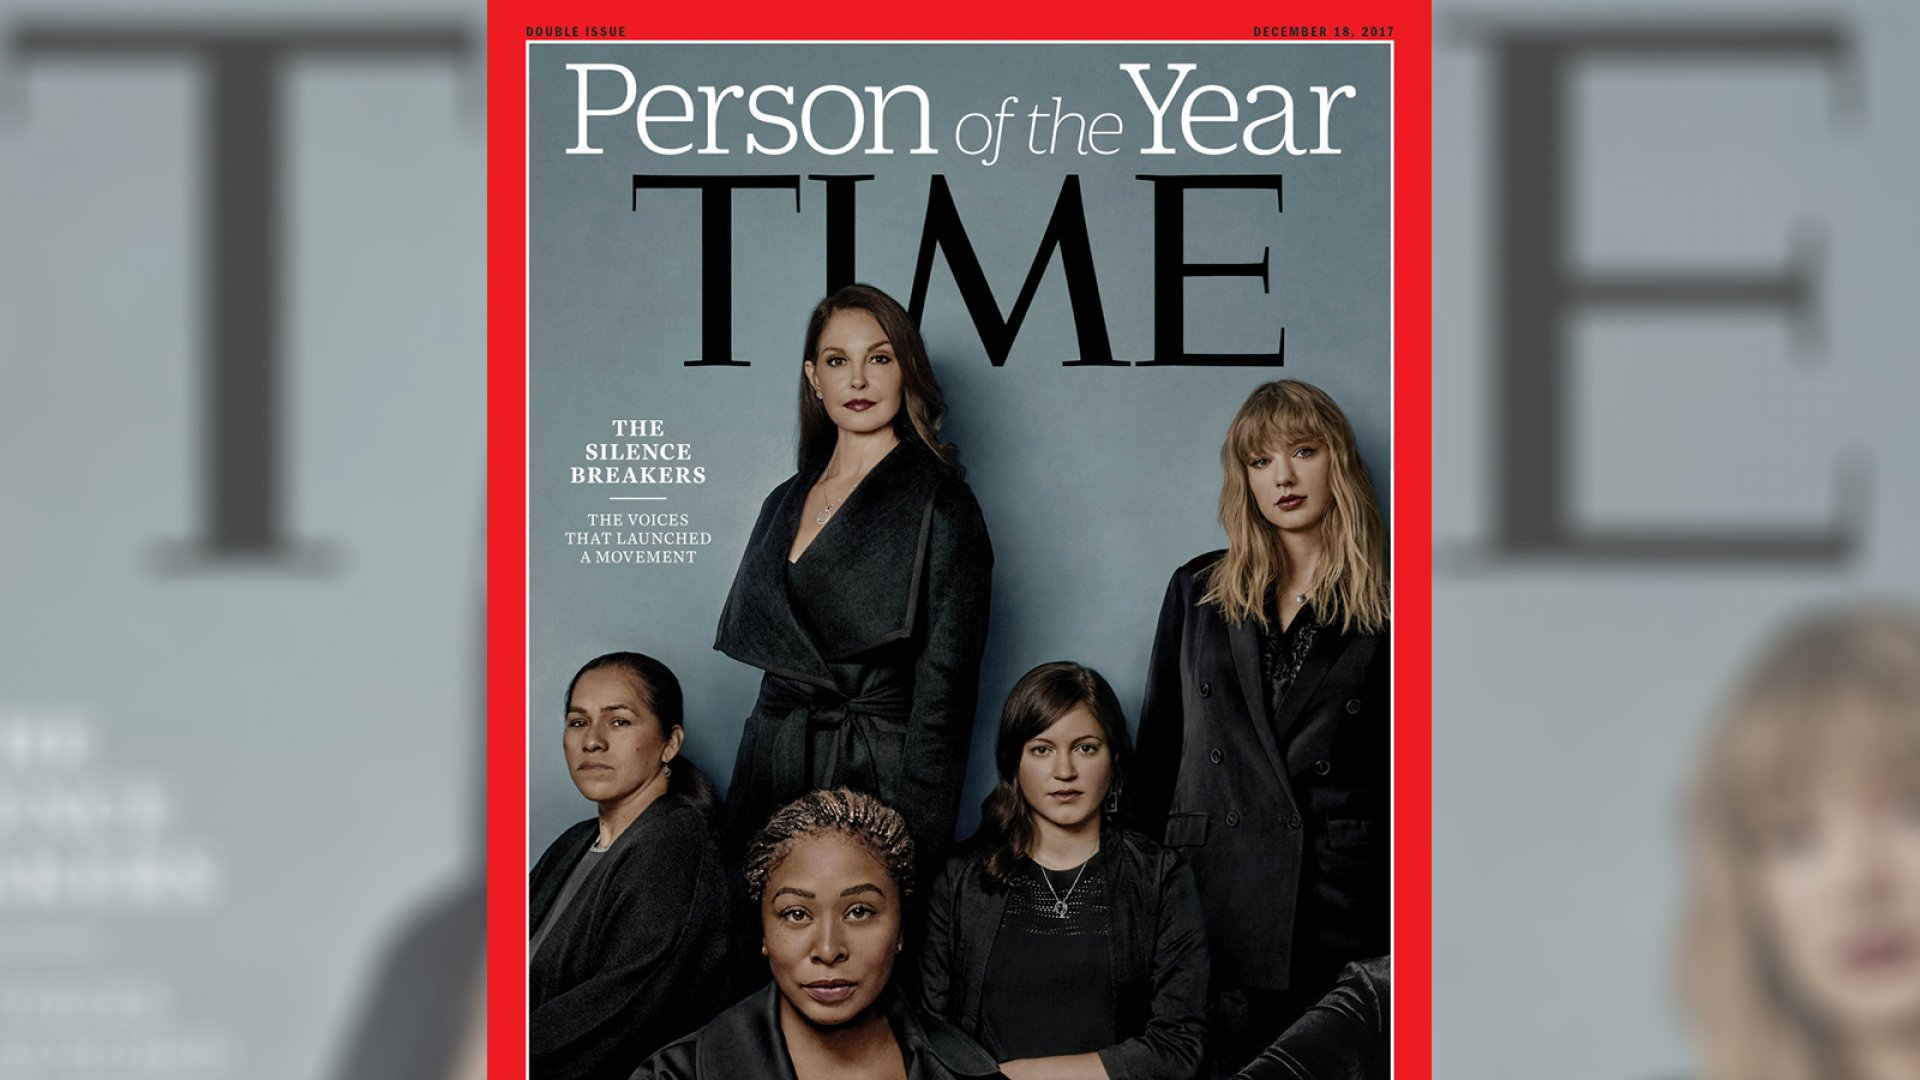 TIME's 2017 Person of the Year: The Silence Breakers.